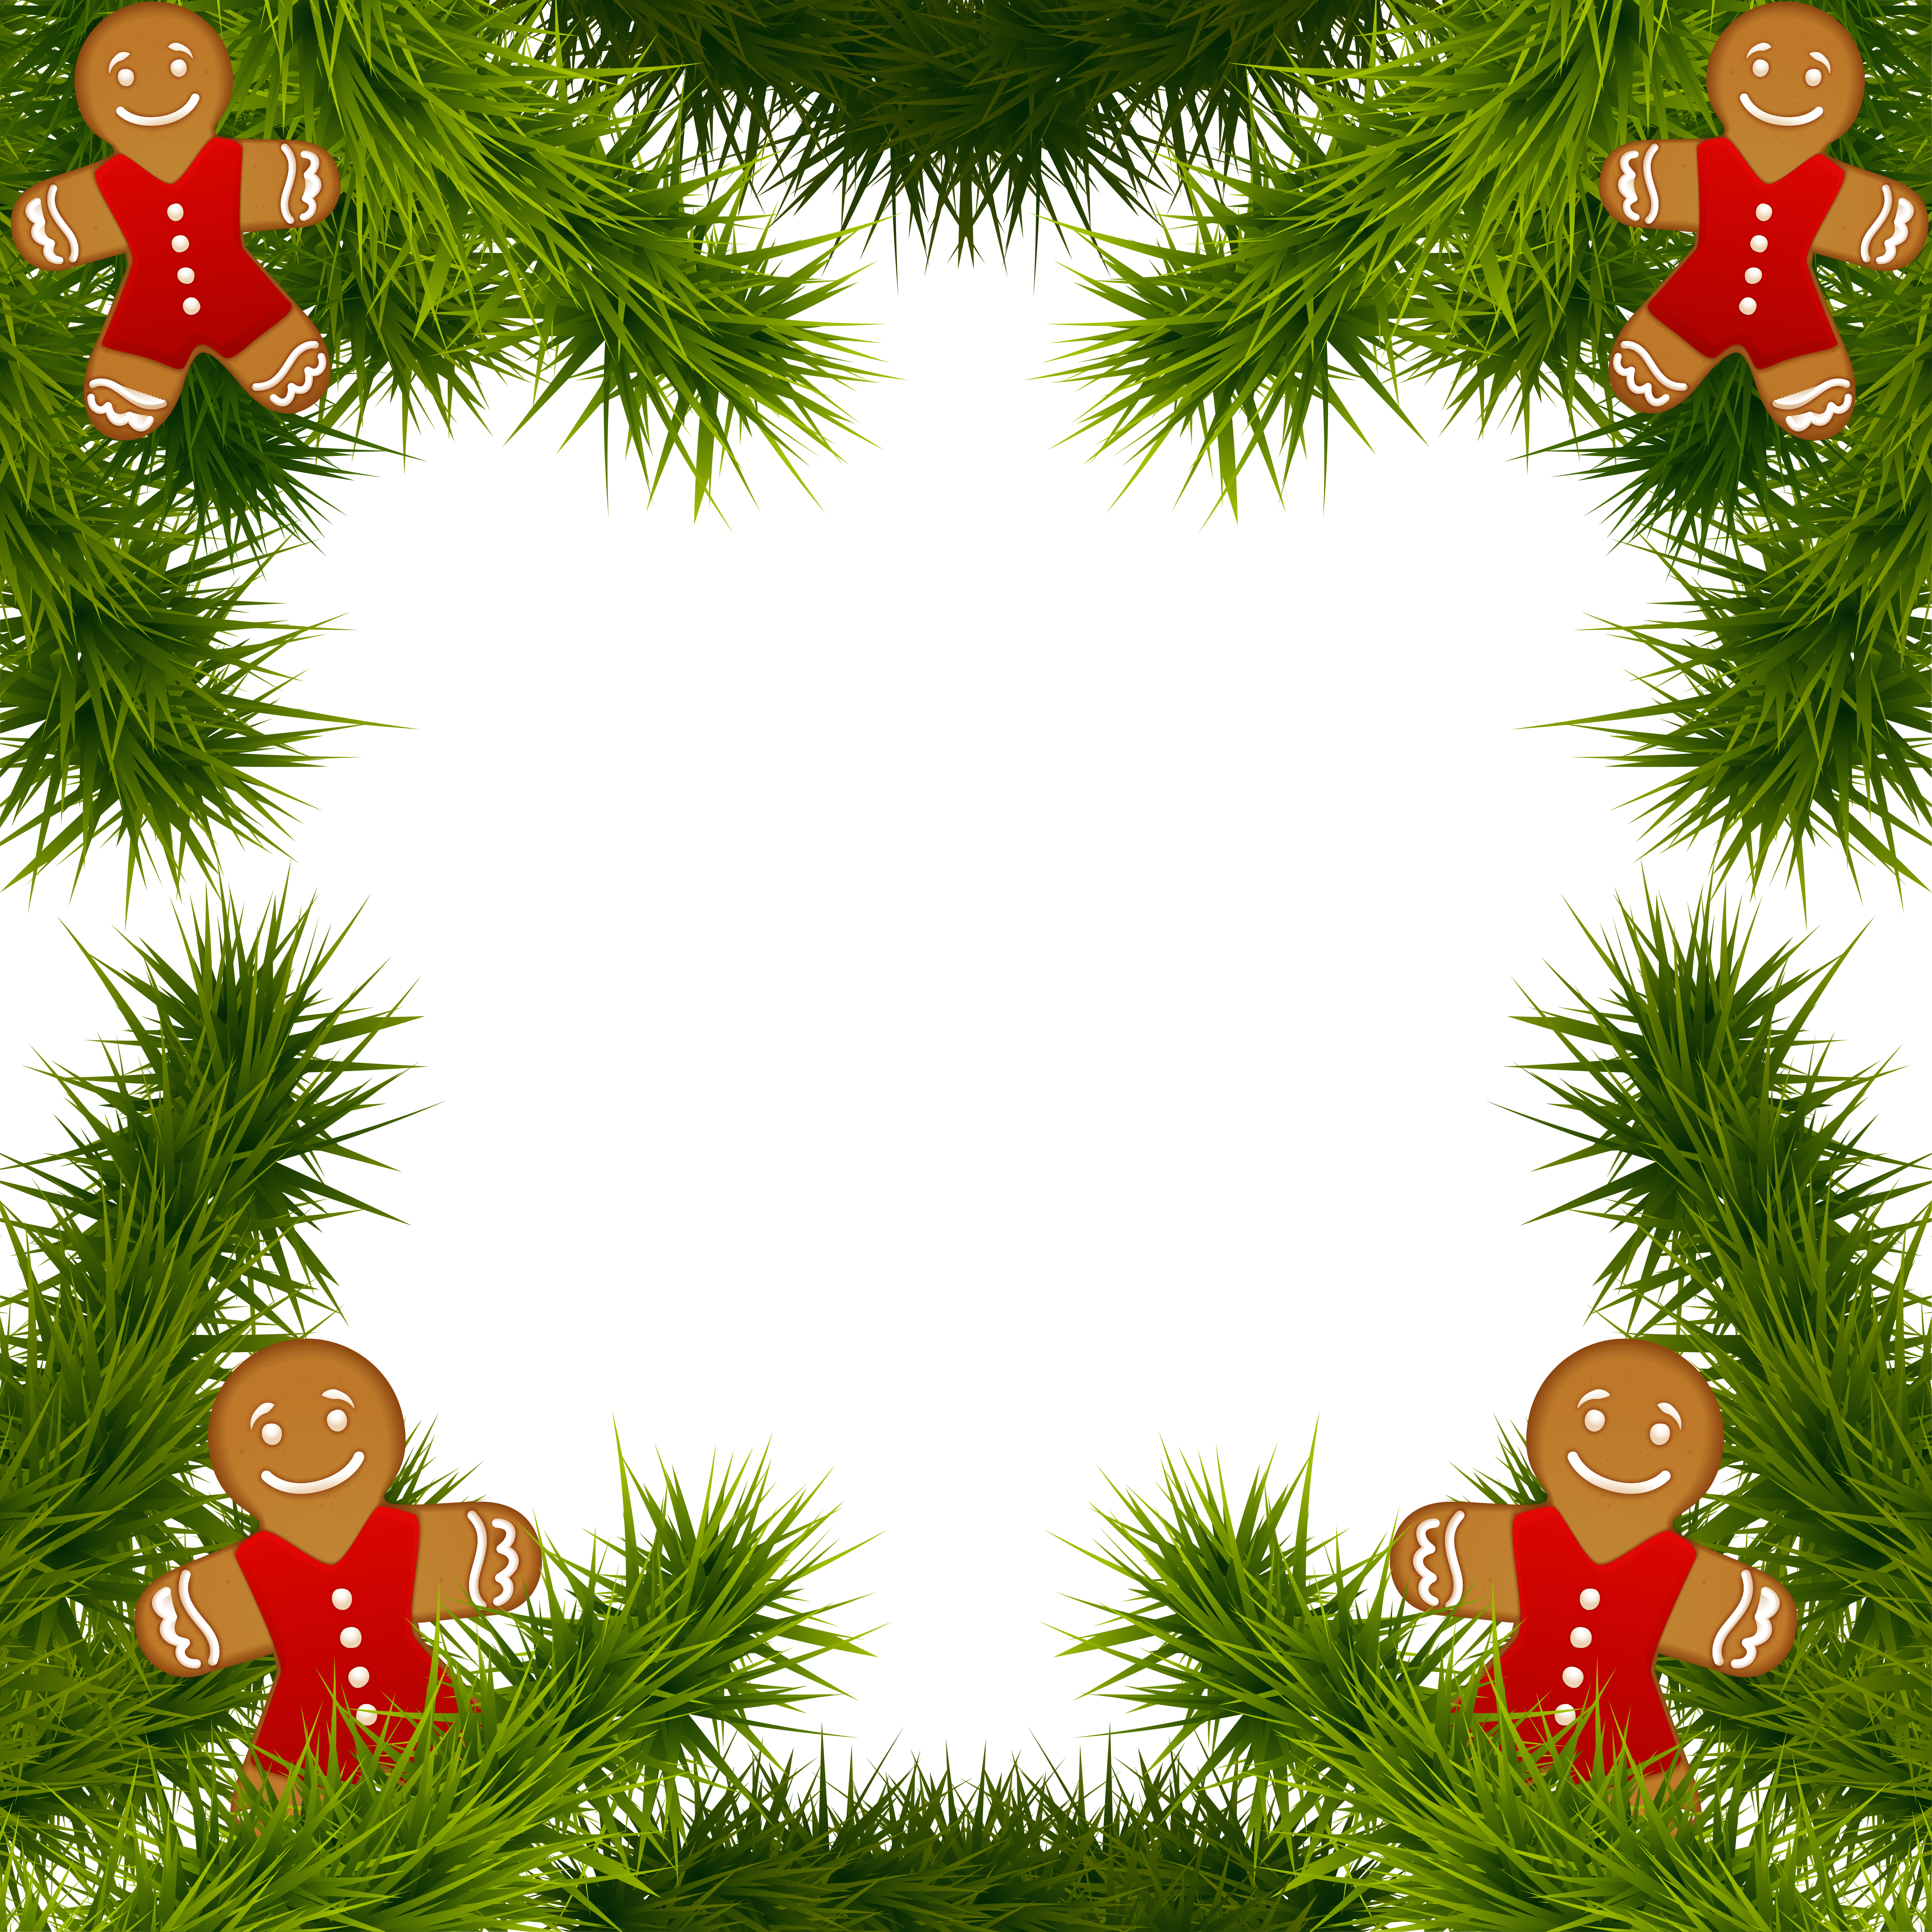 image black and white stock Christmas Pine Frame with Gingerbread Ornaments PNG Clipart Image